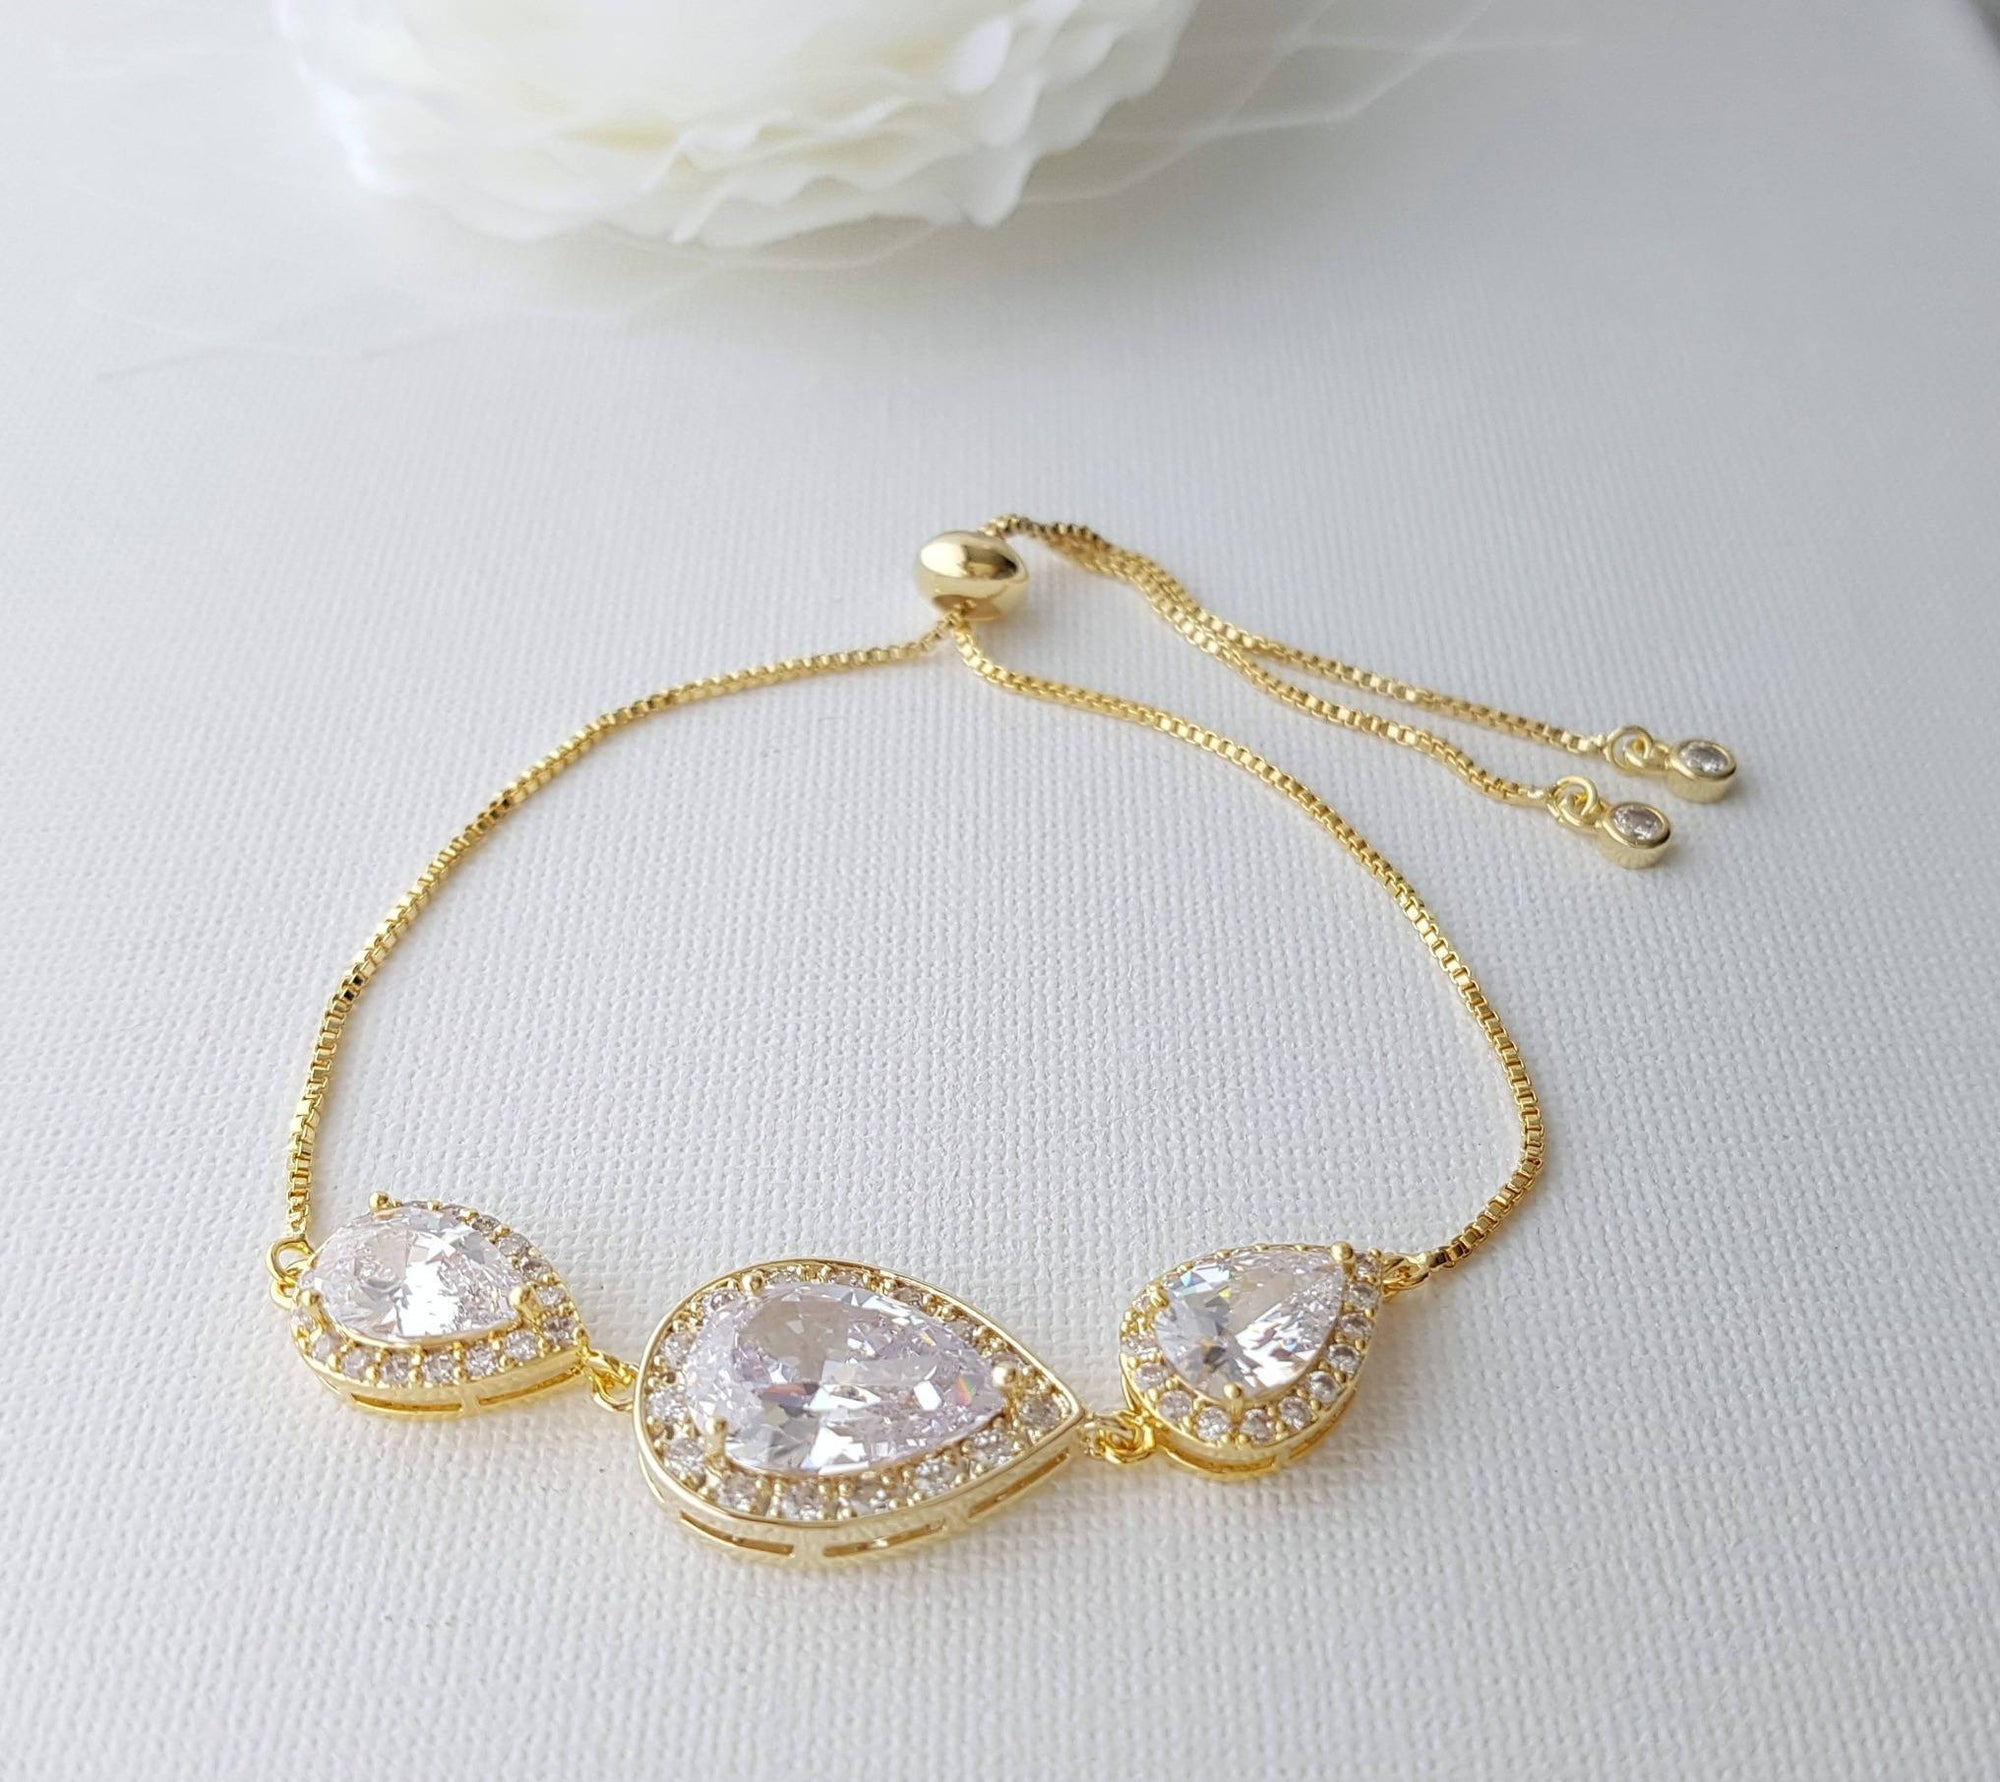 Gold Bridal Bracelet, Gold Wedding Jewelry, Gold Crystal Bracelet, Clear Cubic Zirconia, Gold Teardrop Bracelet, Bridesmaid Bracelet, Evelyn - PoetryDesigns